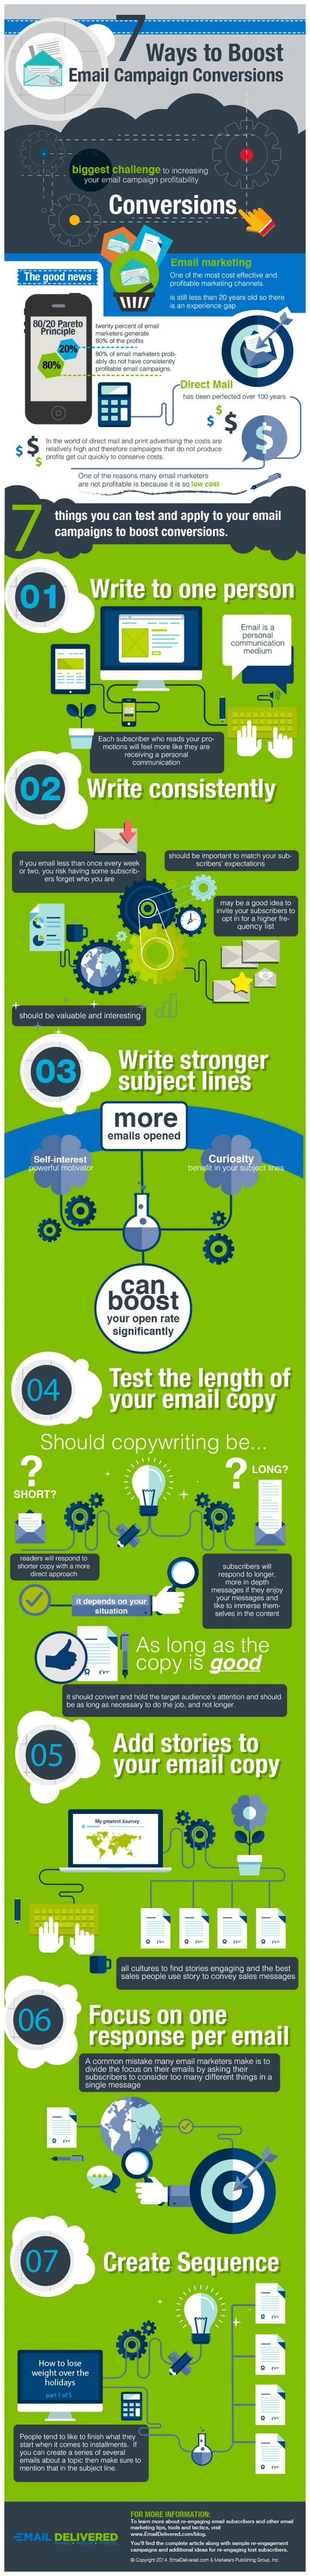 7 Ways to Boost #Email Campaign #Conversions #Infographic